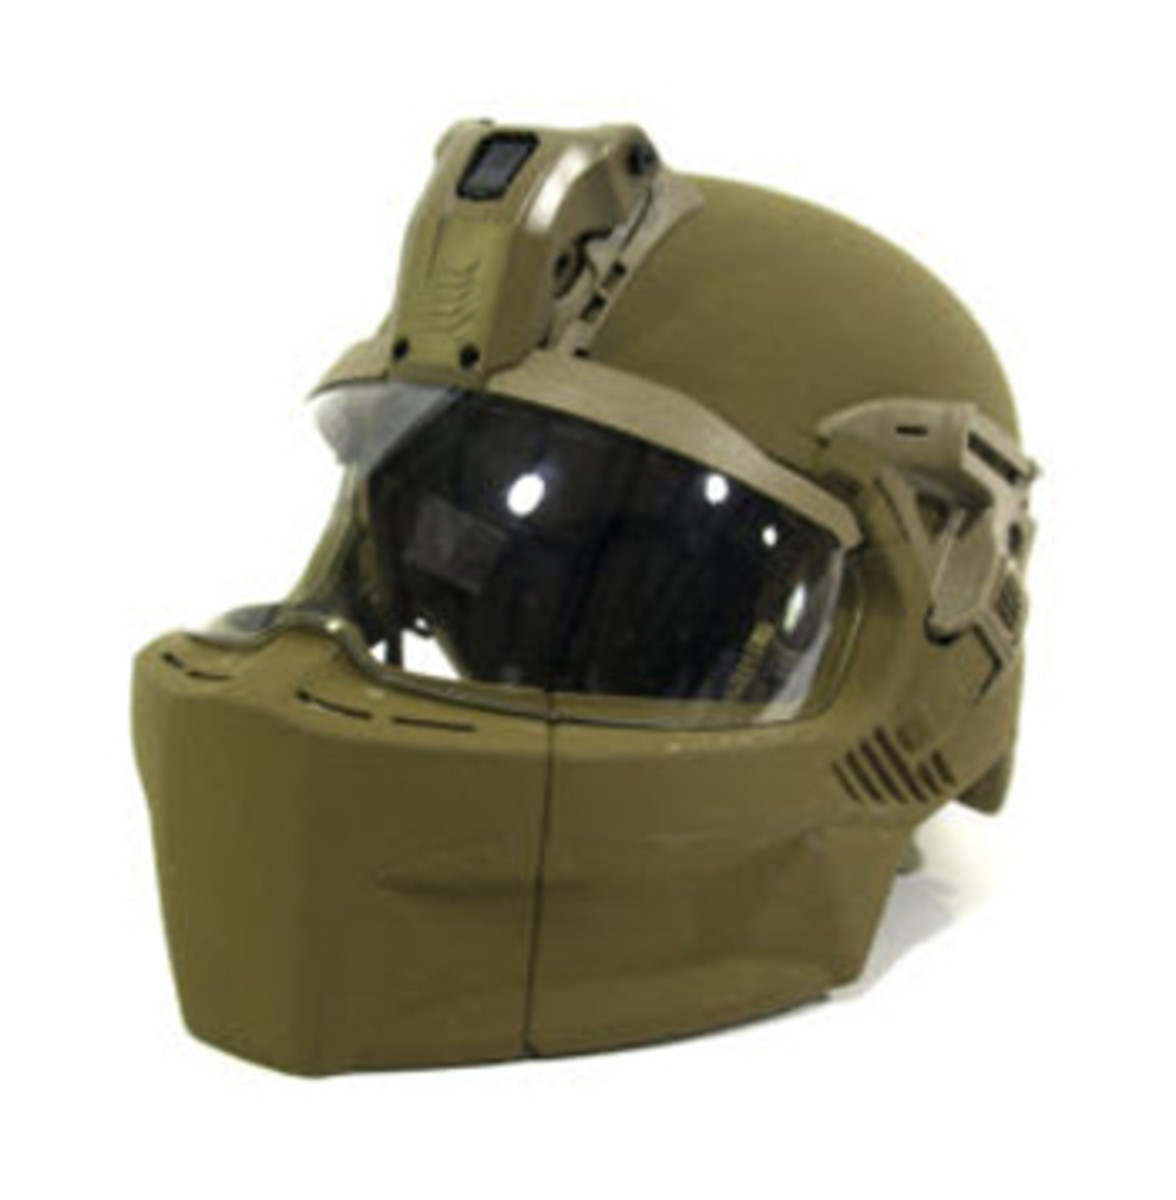 "The new Integrated Head Protection System (IHPS) is configured with mandible and visor without ballistic applique for ""Rough Terrain"" static line parachute jump operations. (Photo by Rebecka Waller, Audio Visual Production Specialist, Airborne and Special Operations Test Directorate, U.S. Army Operational Test Command)"